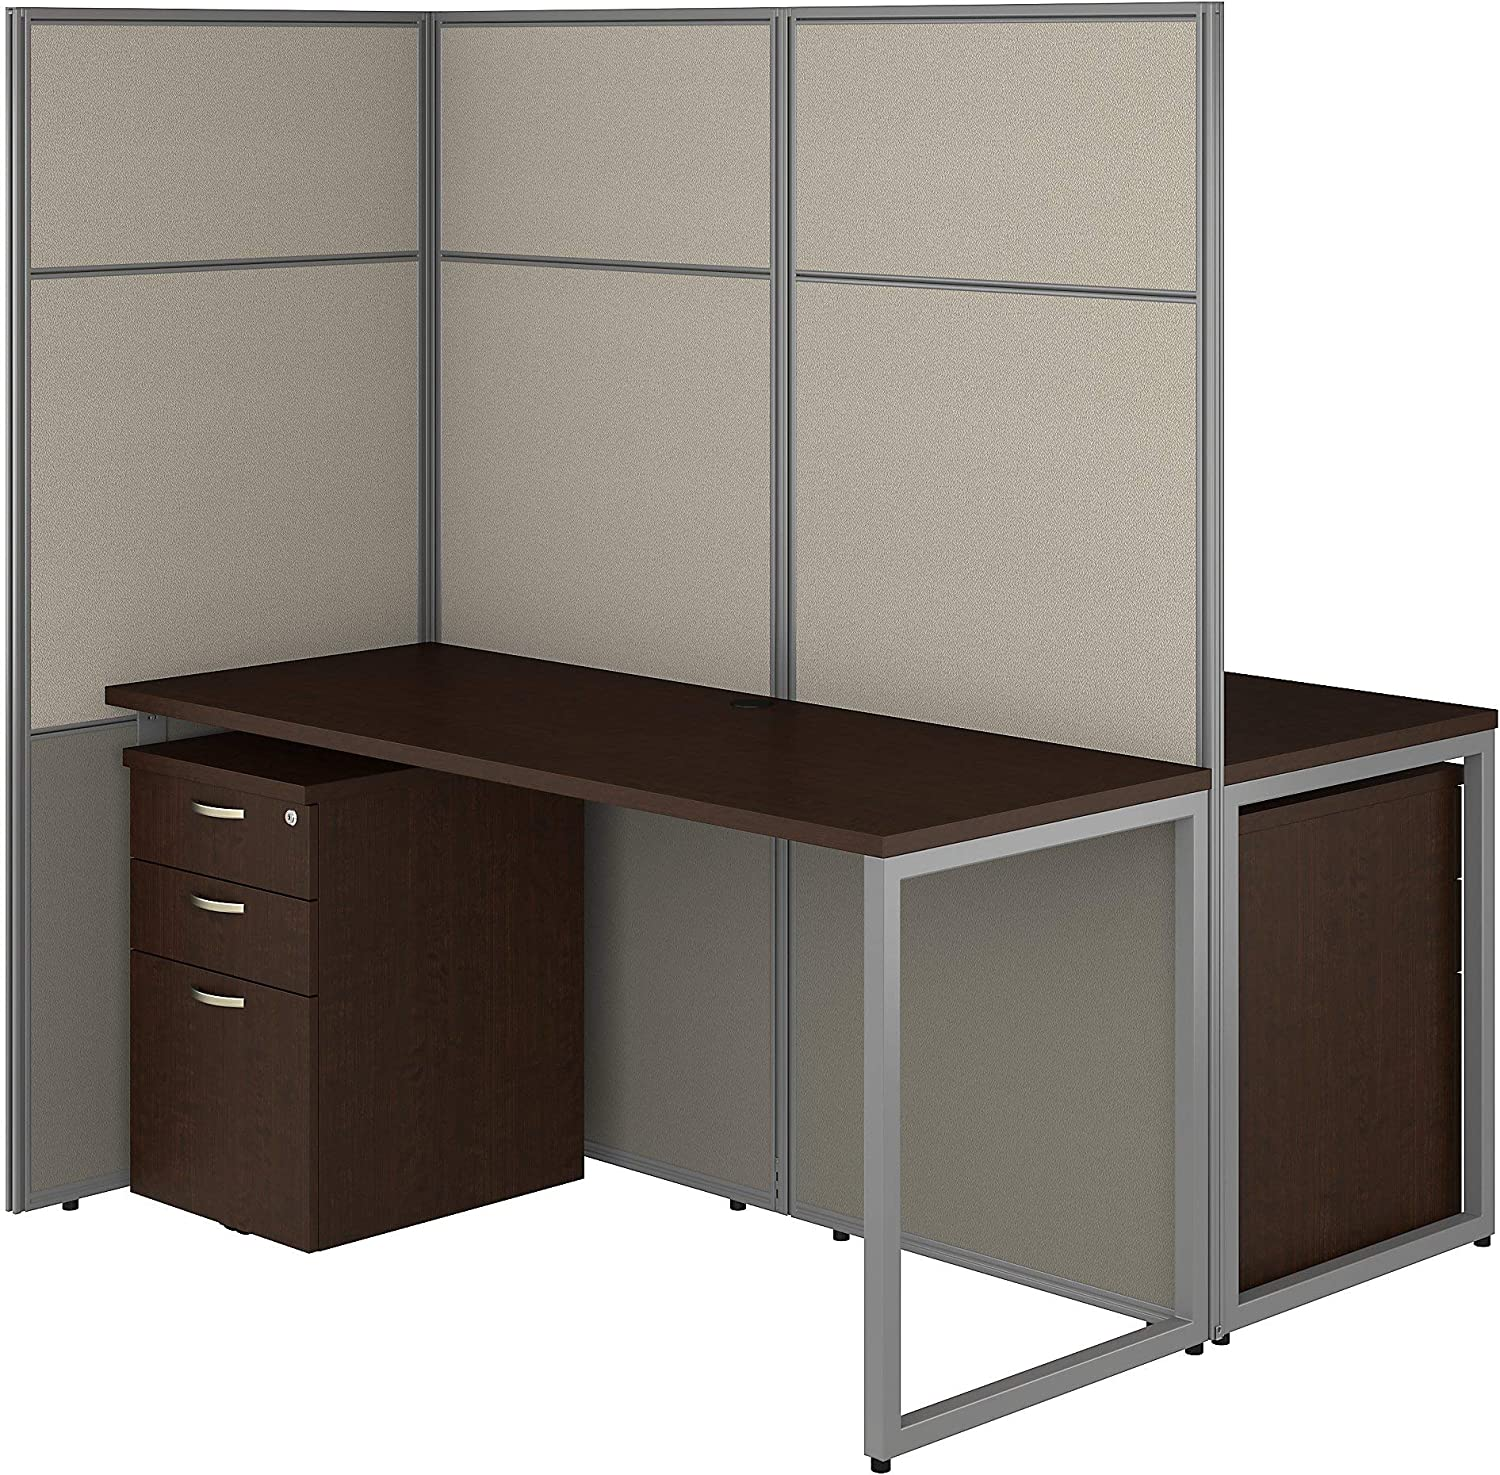 Bush Business Furniture Easy Office 2 Person Cubicle Desk with File Cabinets and 66H Panels, 60Wx60H, Mocha Cherry